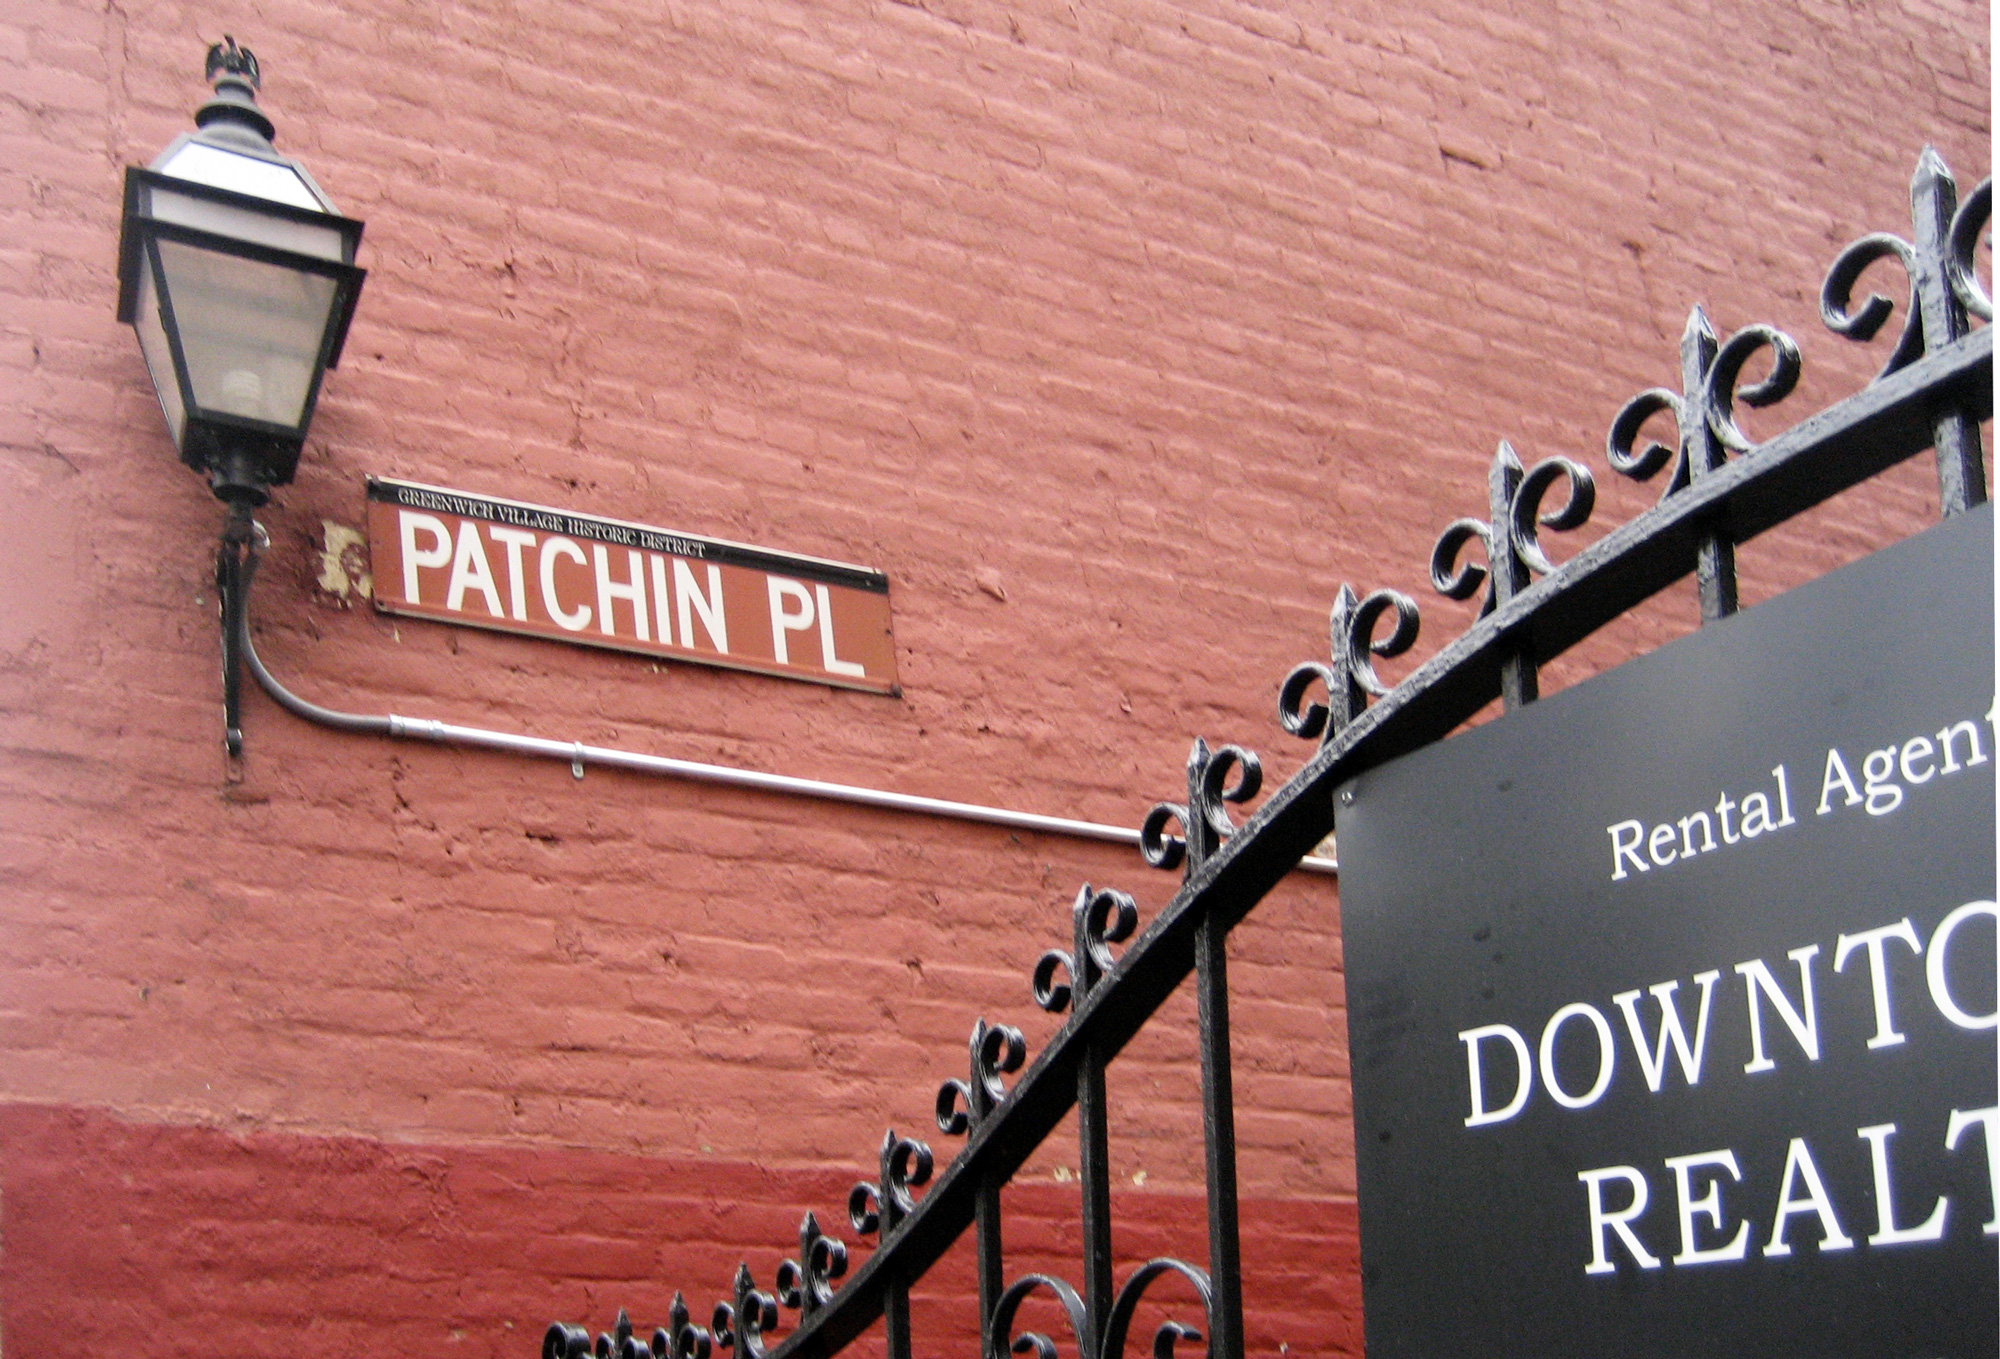 Patchin Place